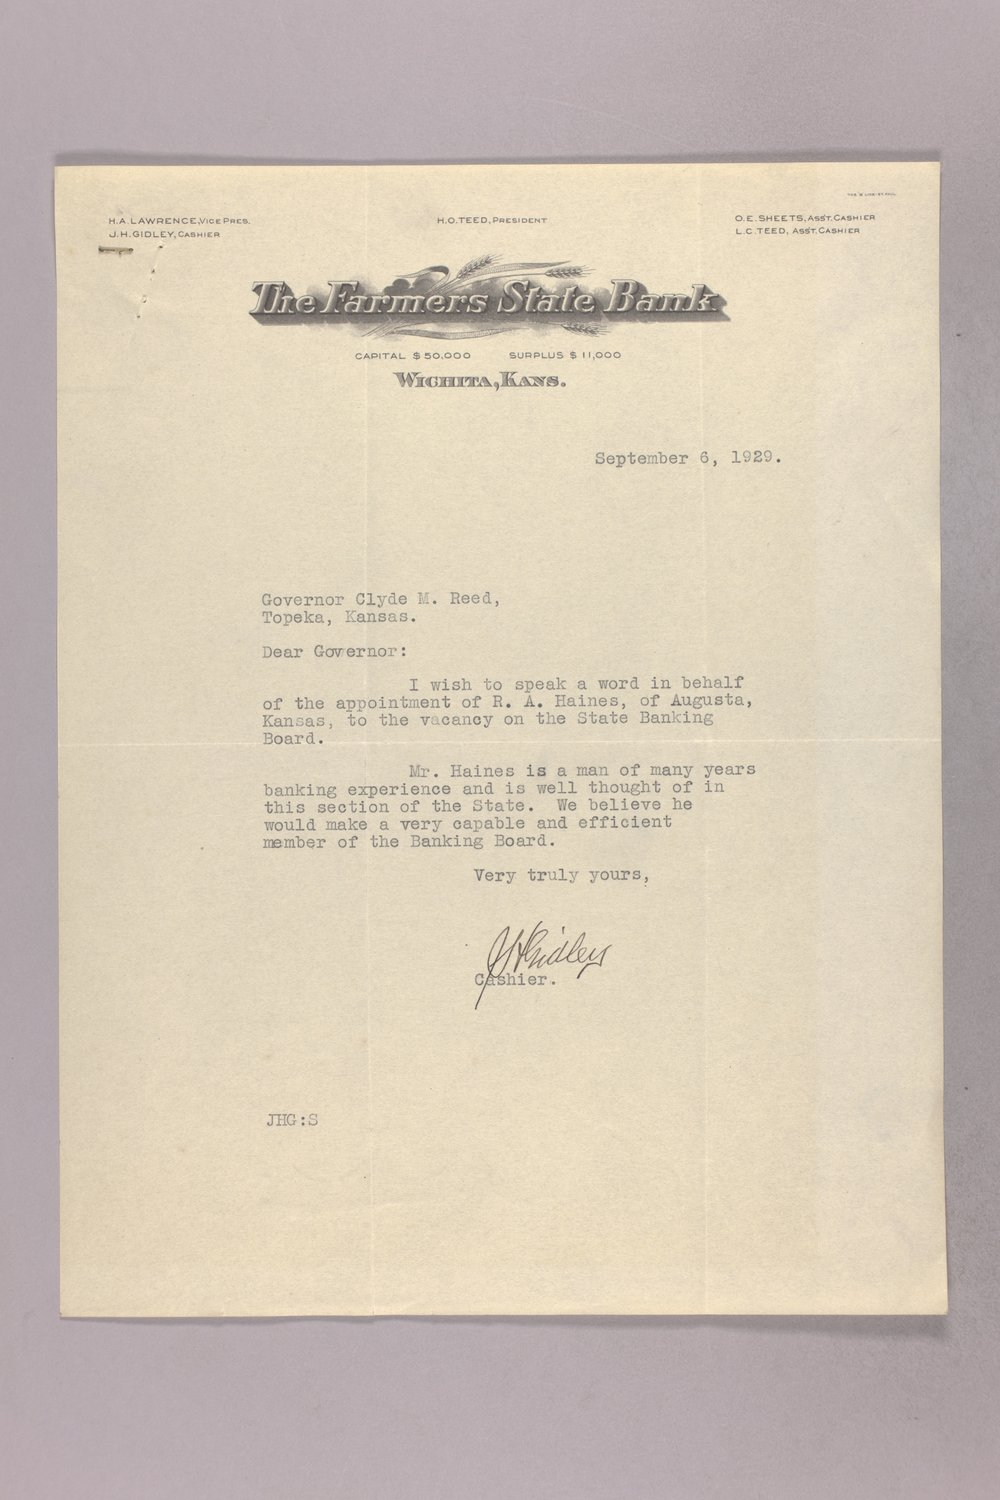 Governor Clyde M. Reed correspondence, Banking Board - 6